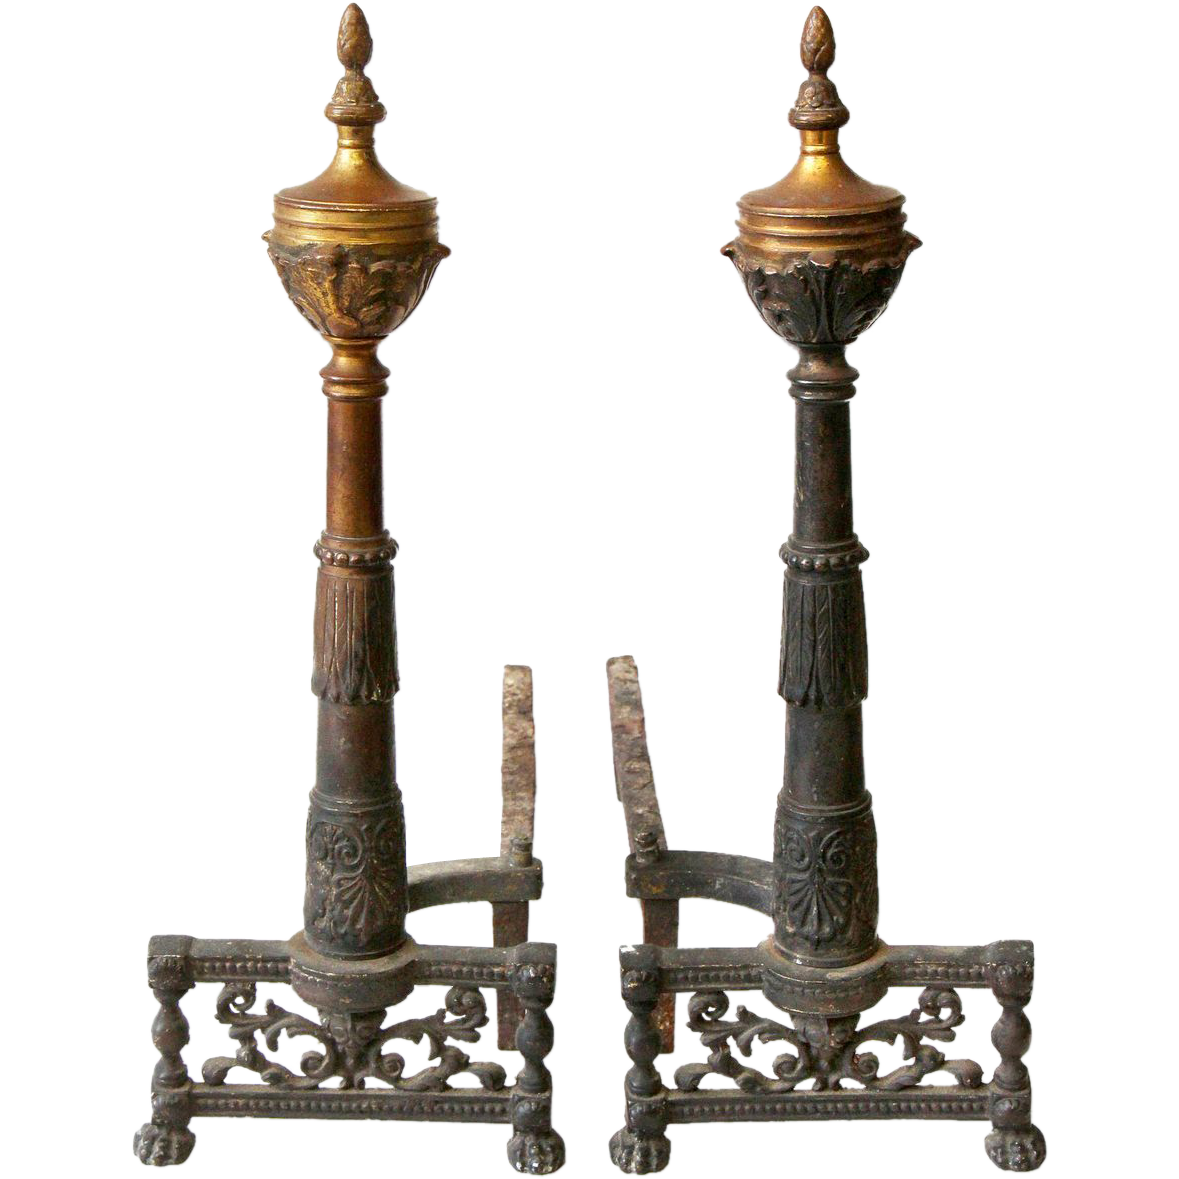 Pair of Early American steeple andirons